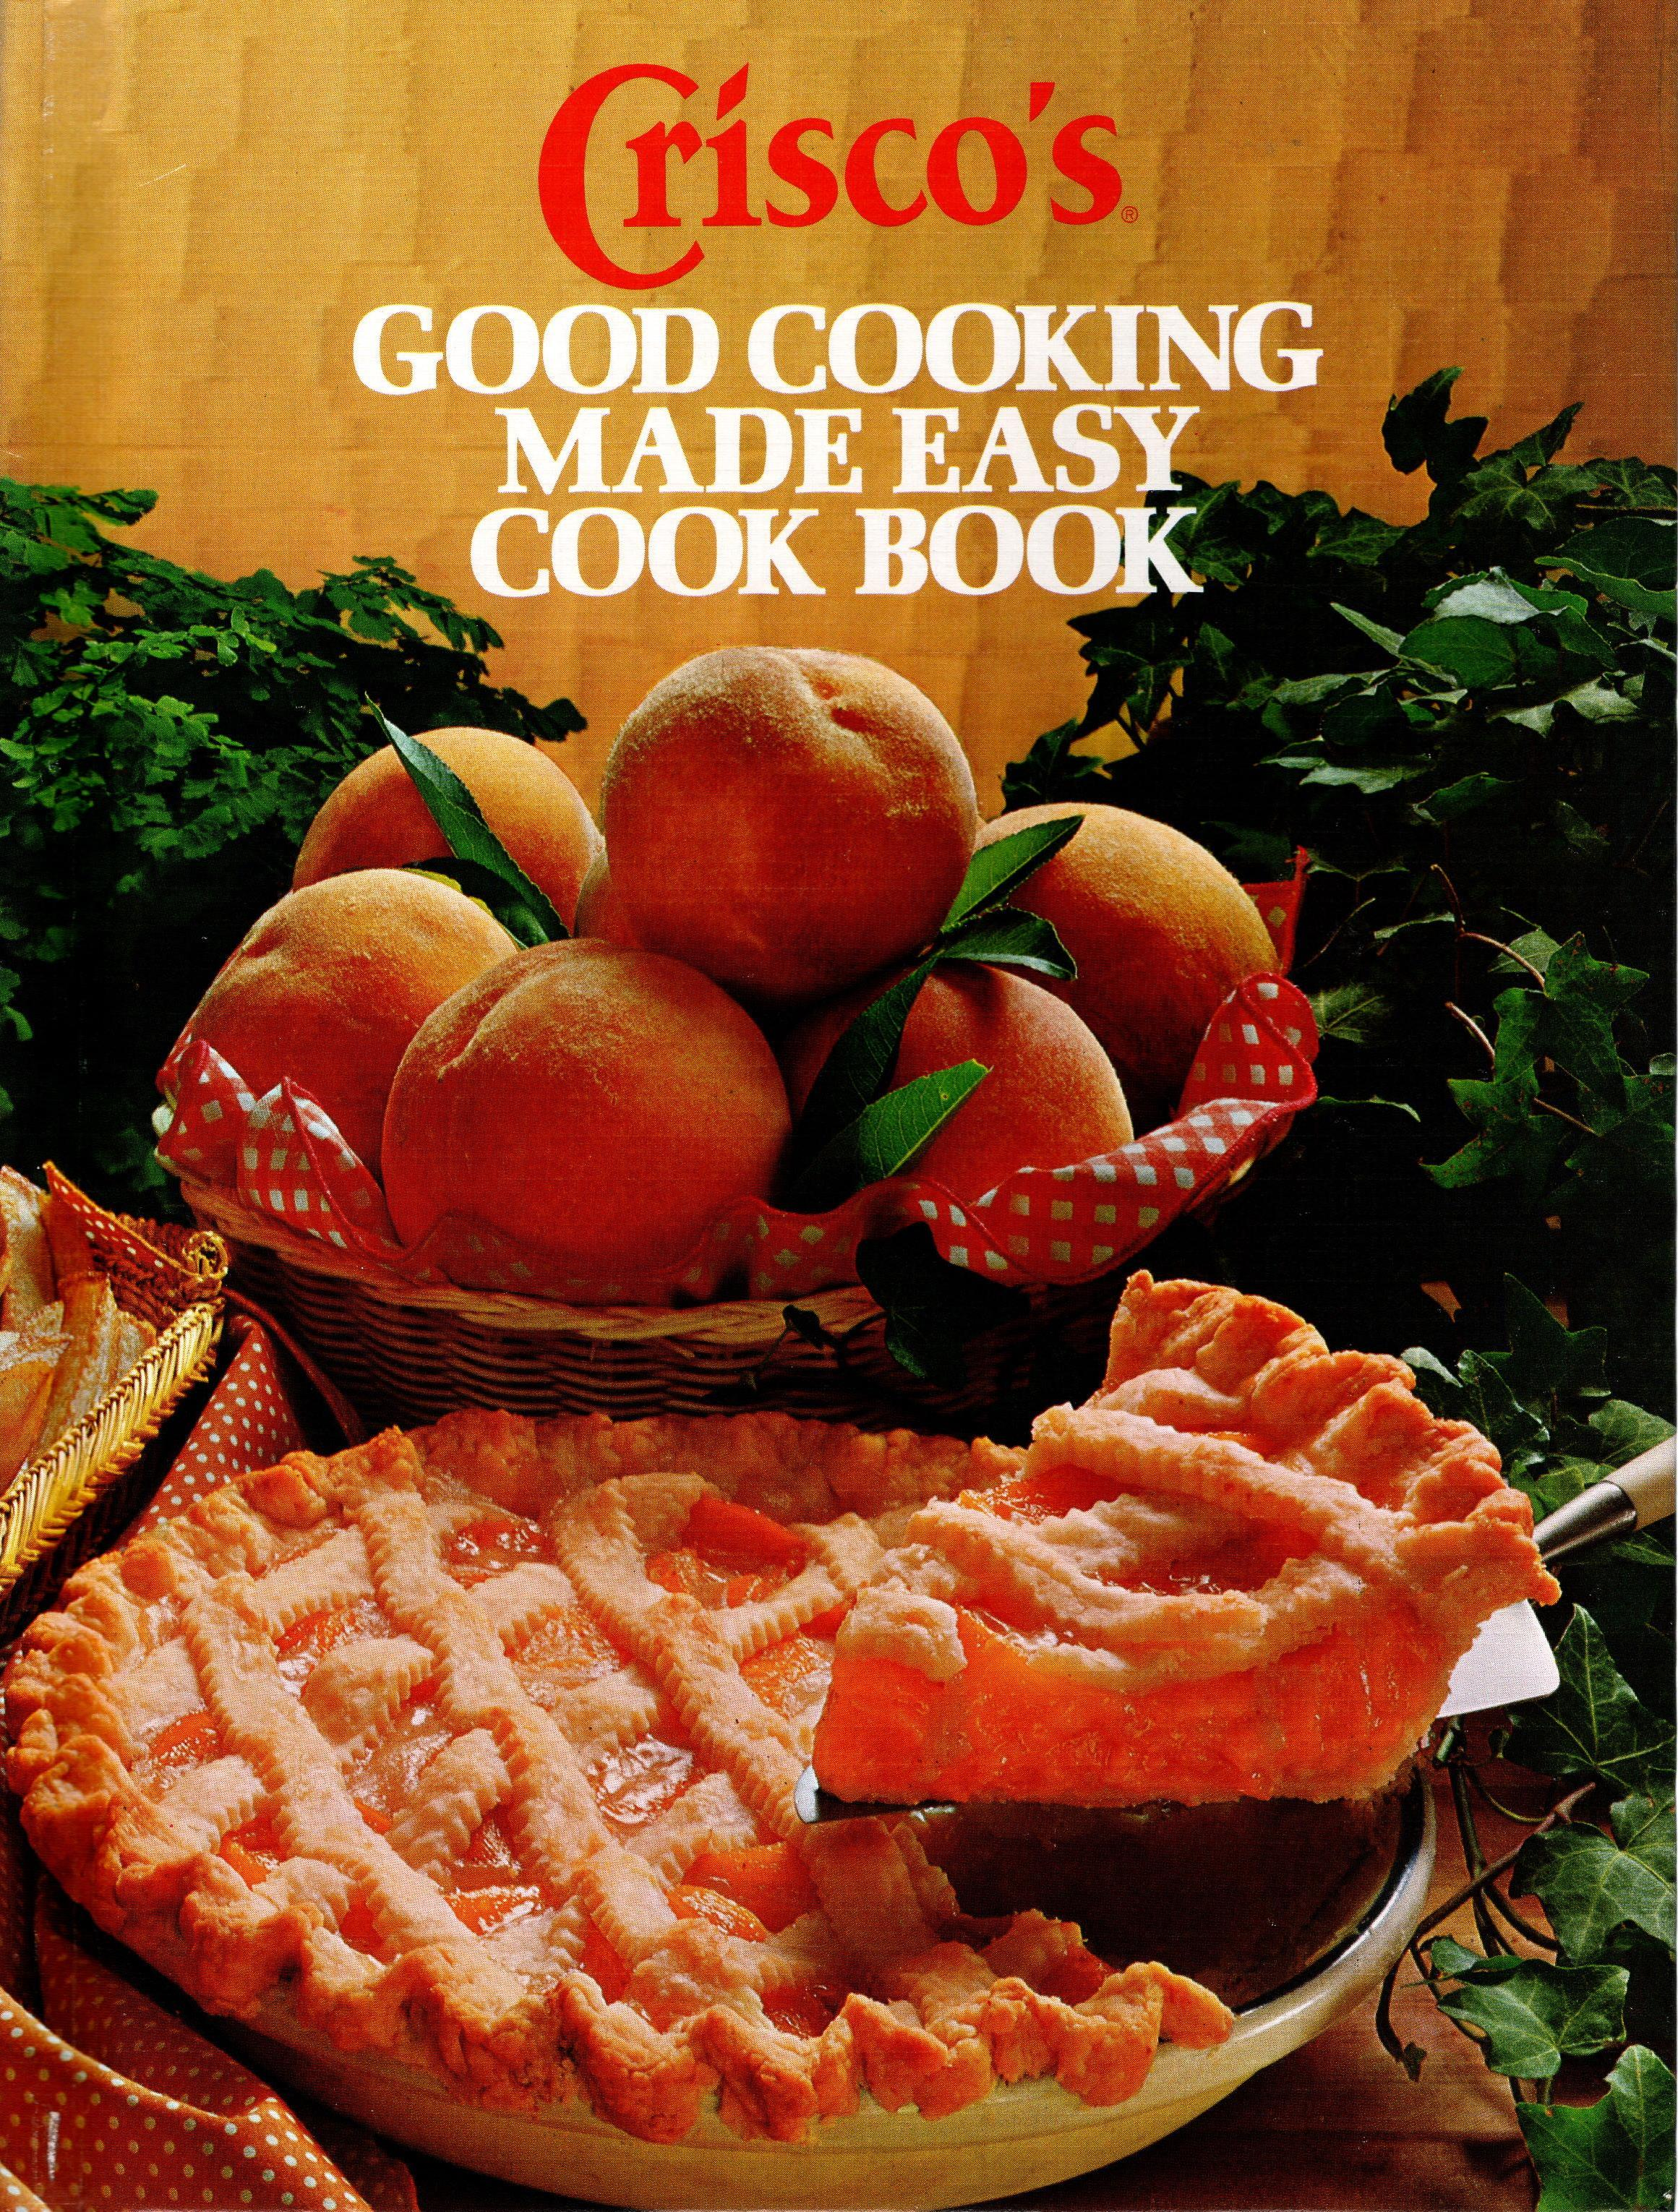 Image for CRISCO'S GOOD COOKING MADE EASY COOK BOOK